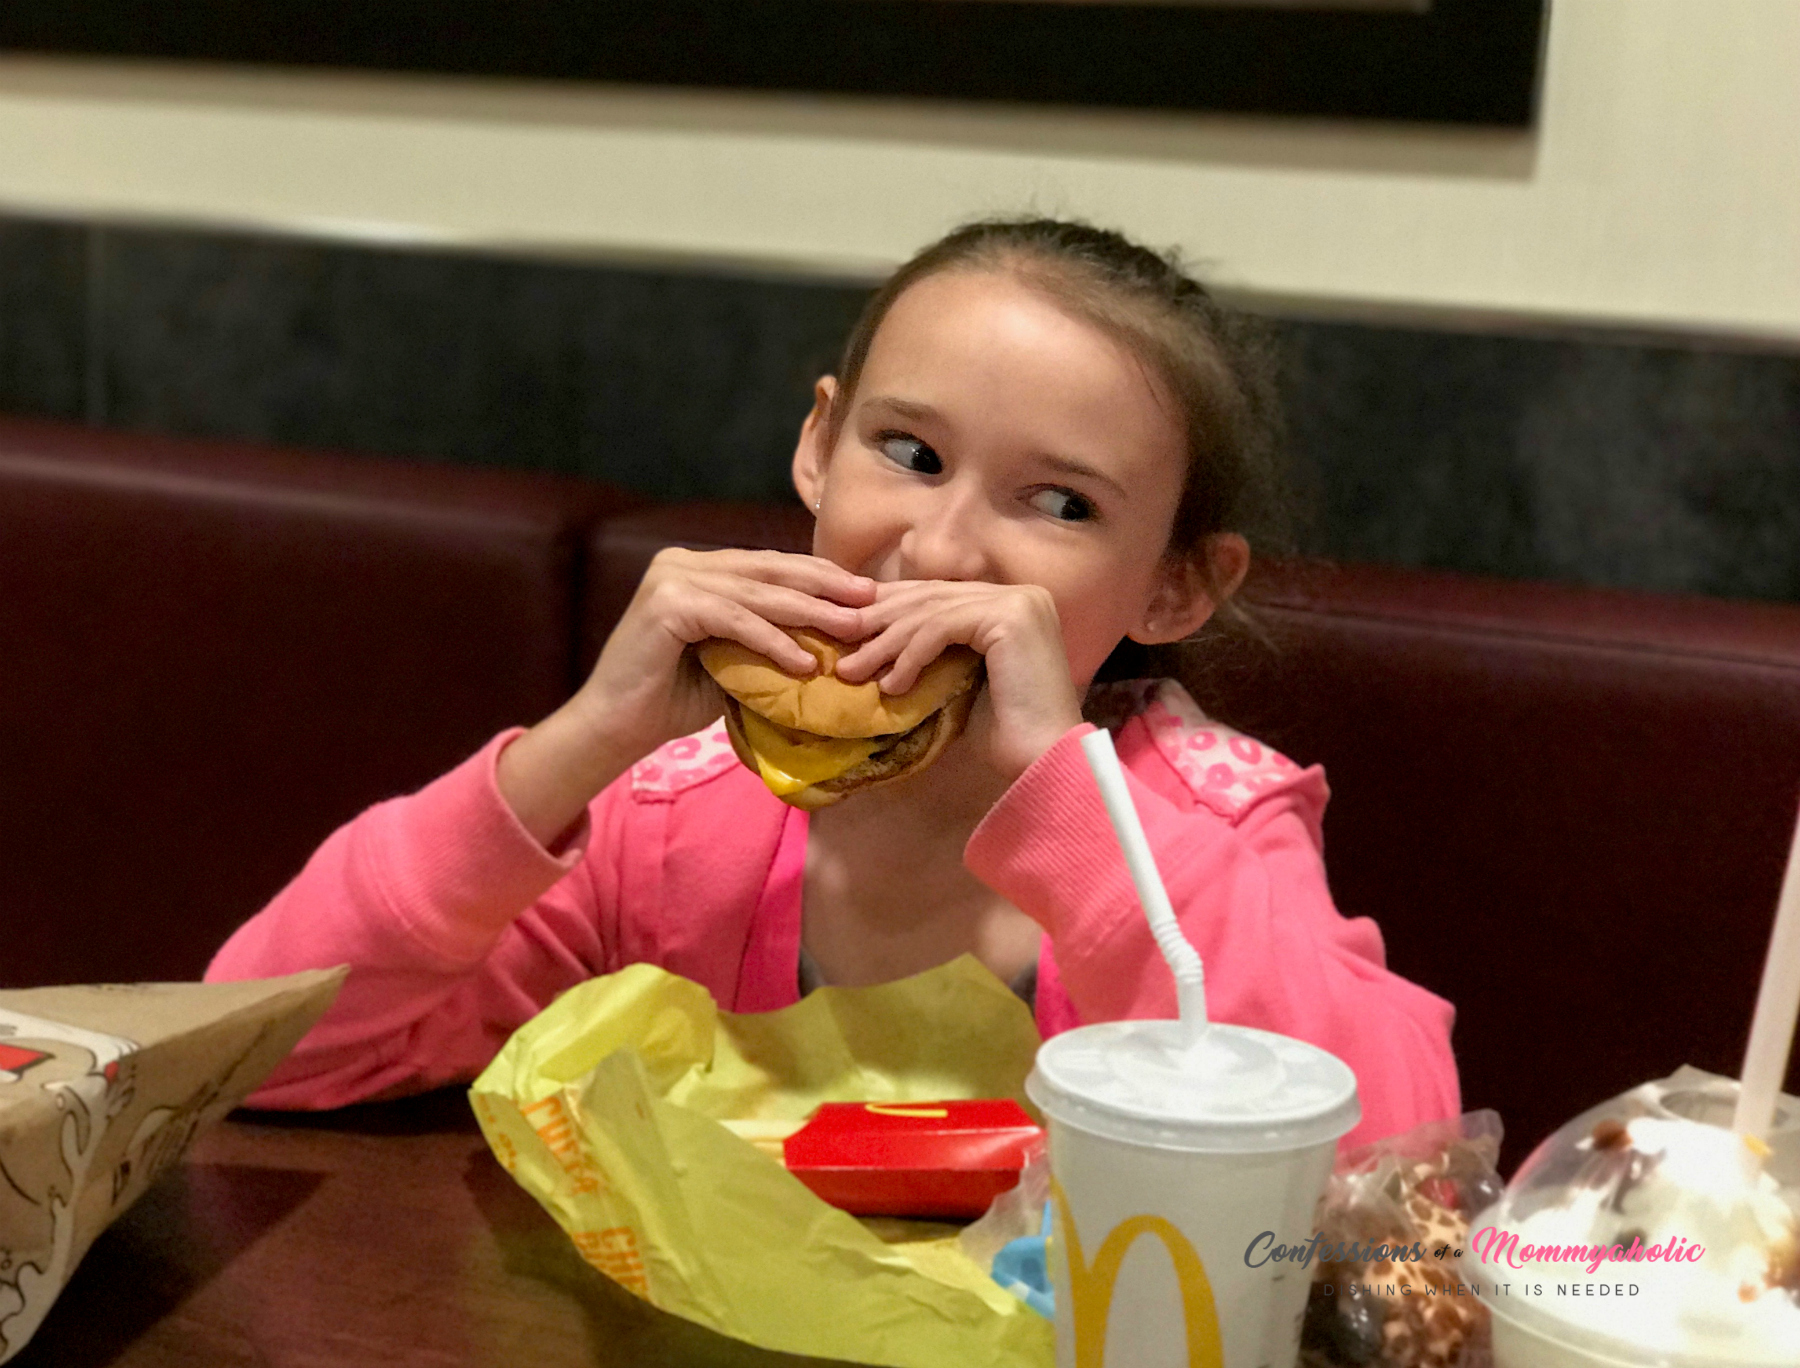 Happily Eating McDonald's